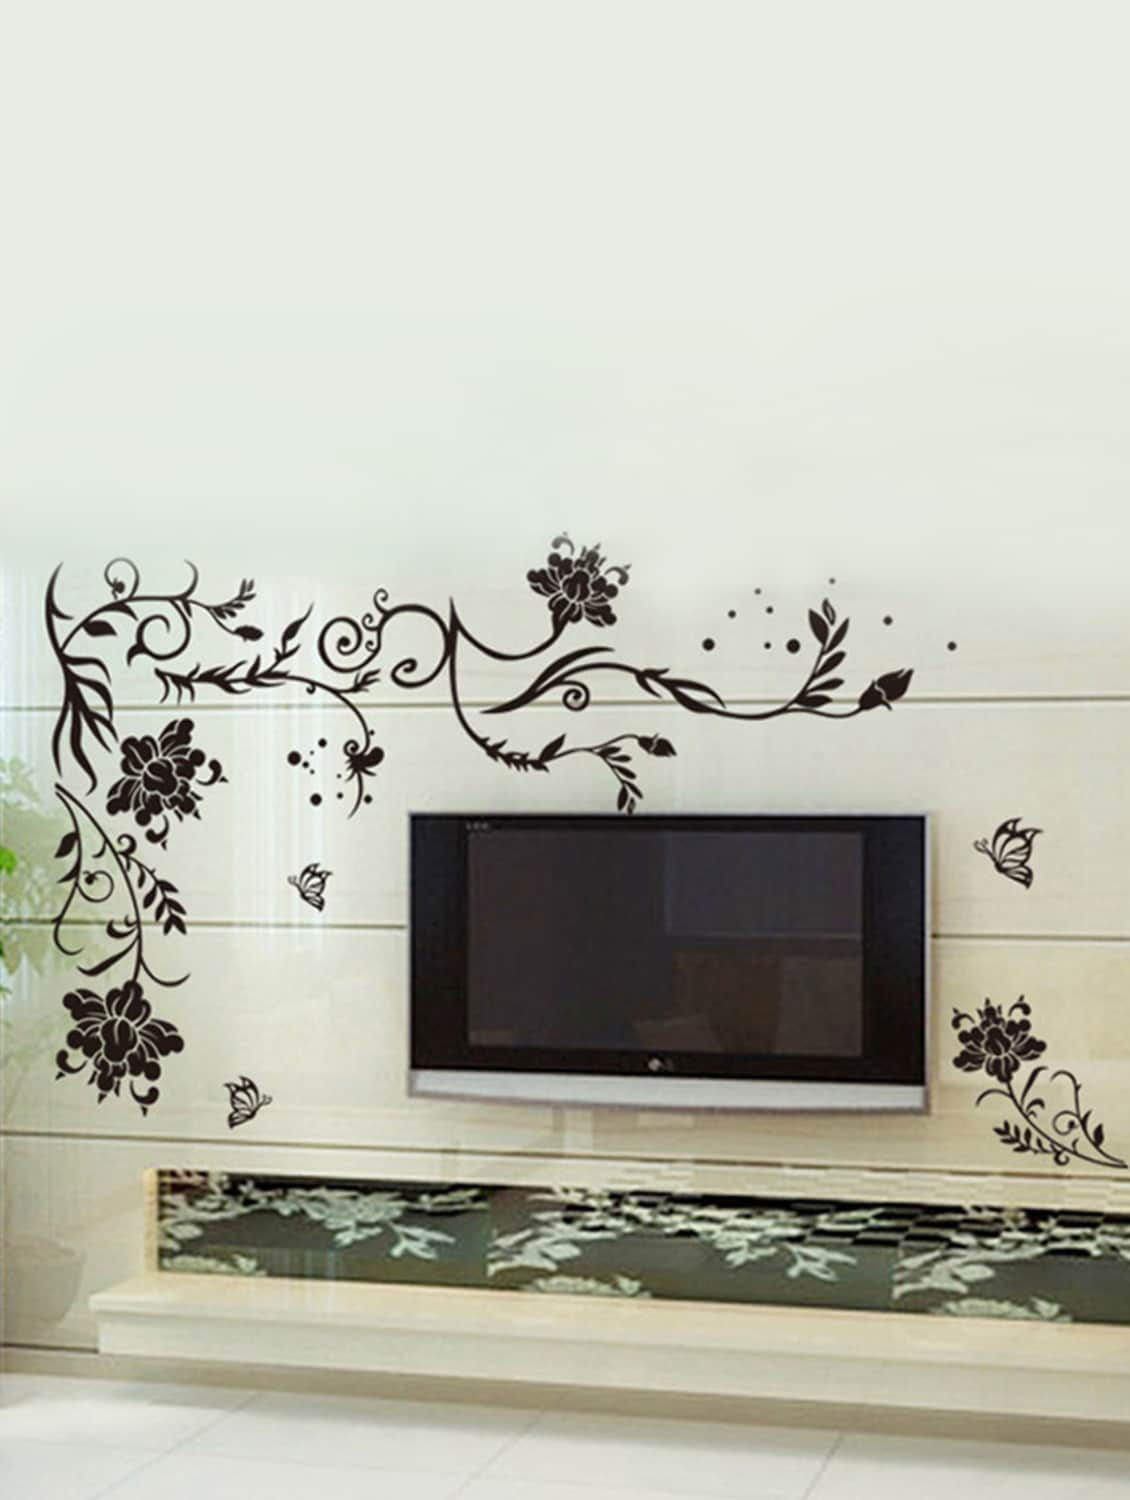 large wall stickers for living room india help to decorate my buy black size floral vine butterflies corner sofa tv background decal by stikerskart online shopping decals